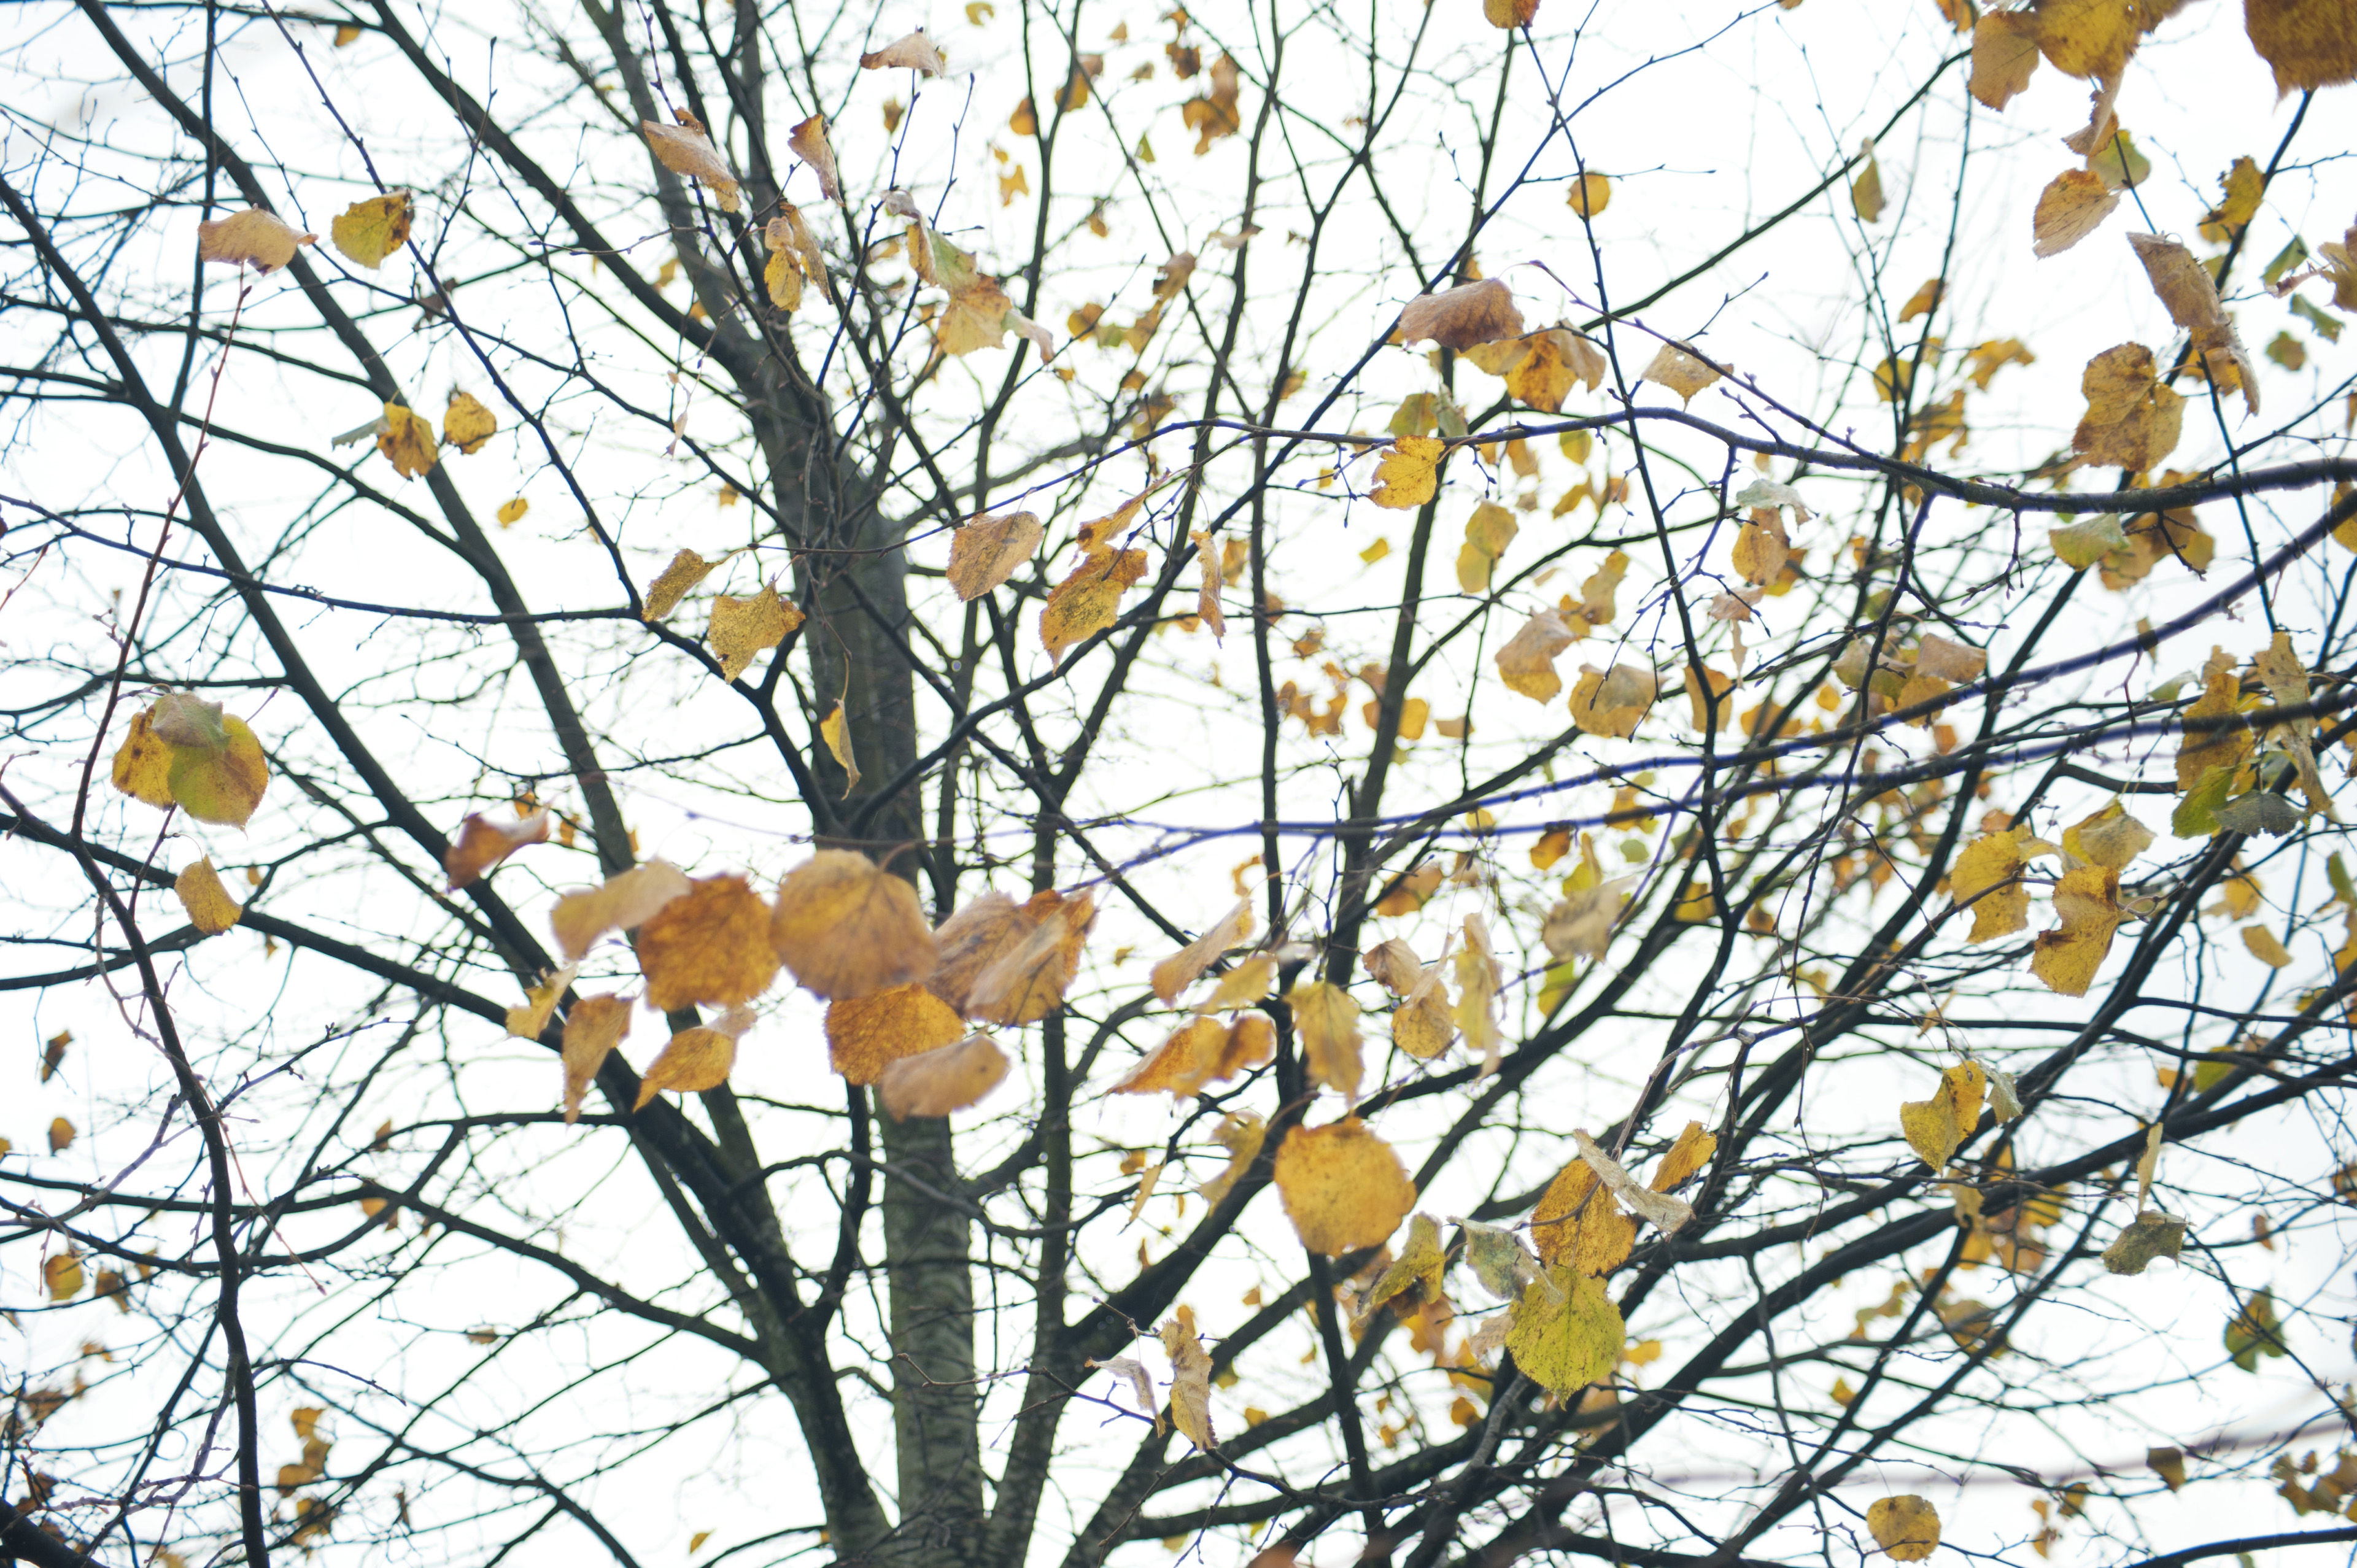 Bare branches of a deciduous tree with random yellow withered leaves, in a cold day of winter